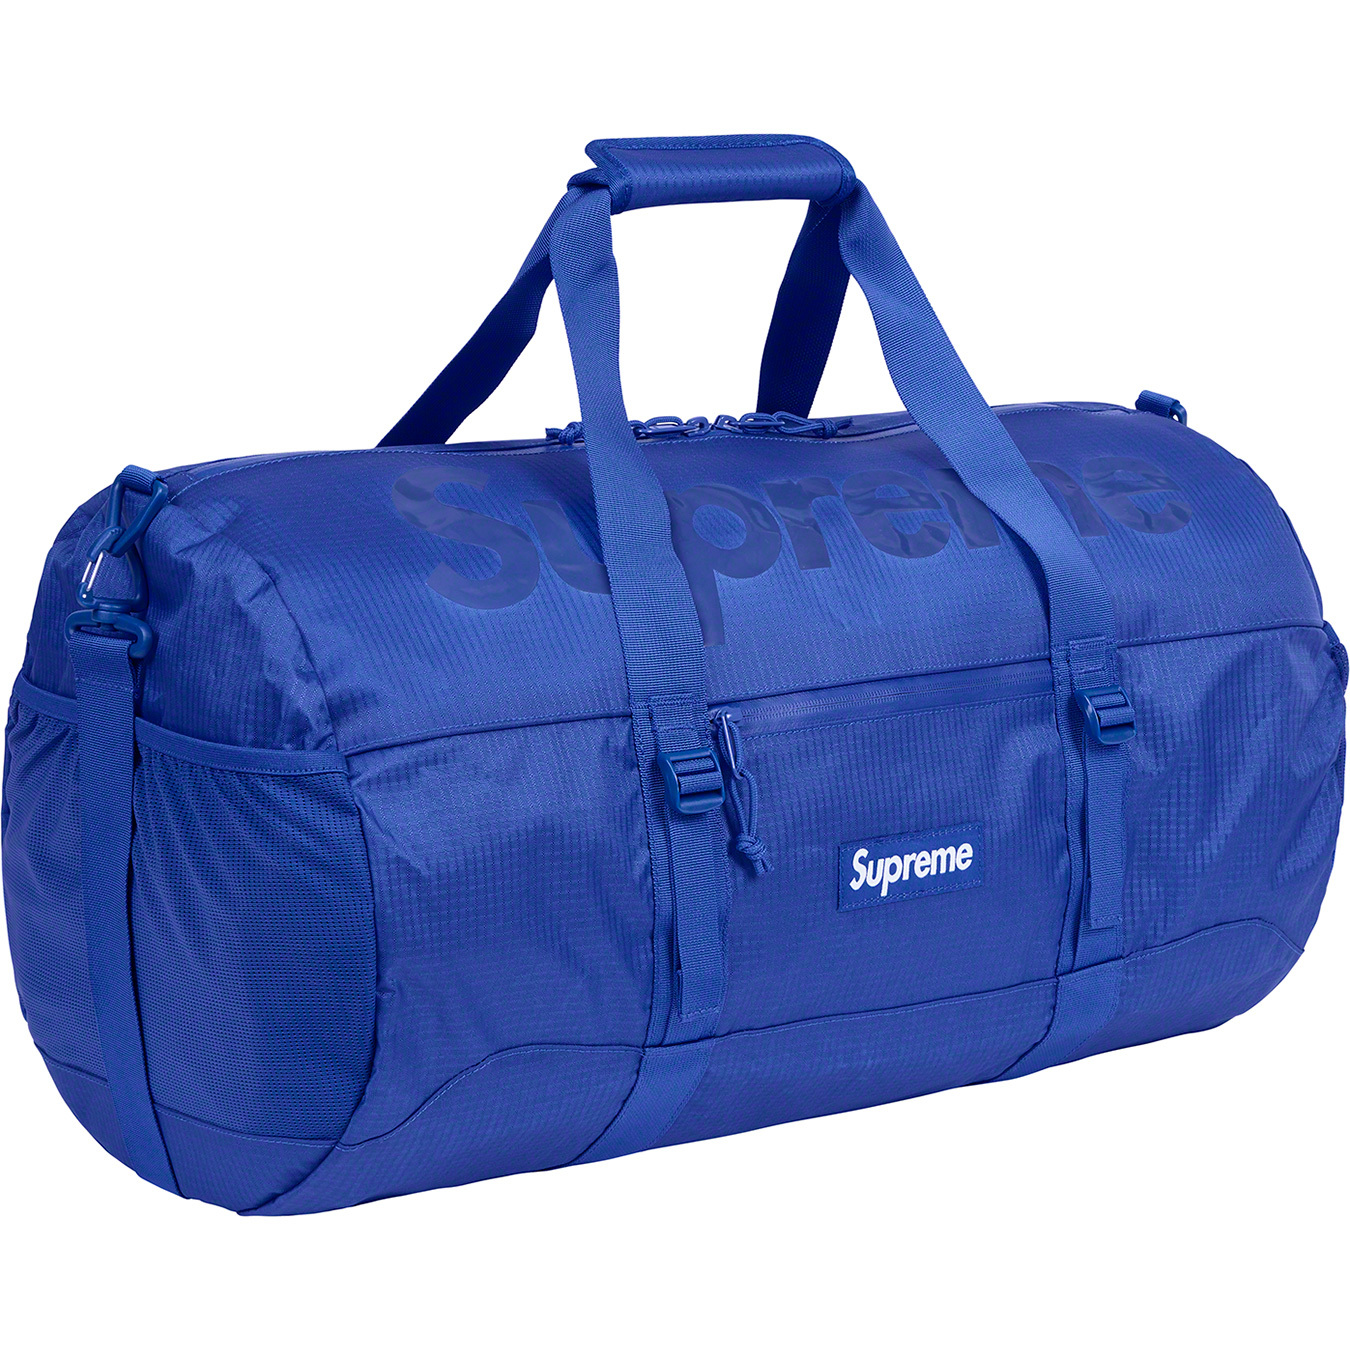 supreme-21ss-spring-summer-duffle-bag